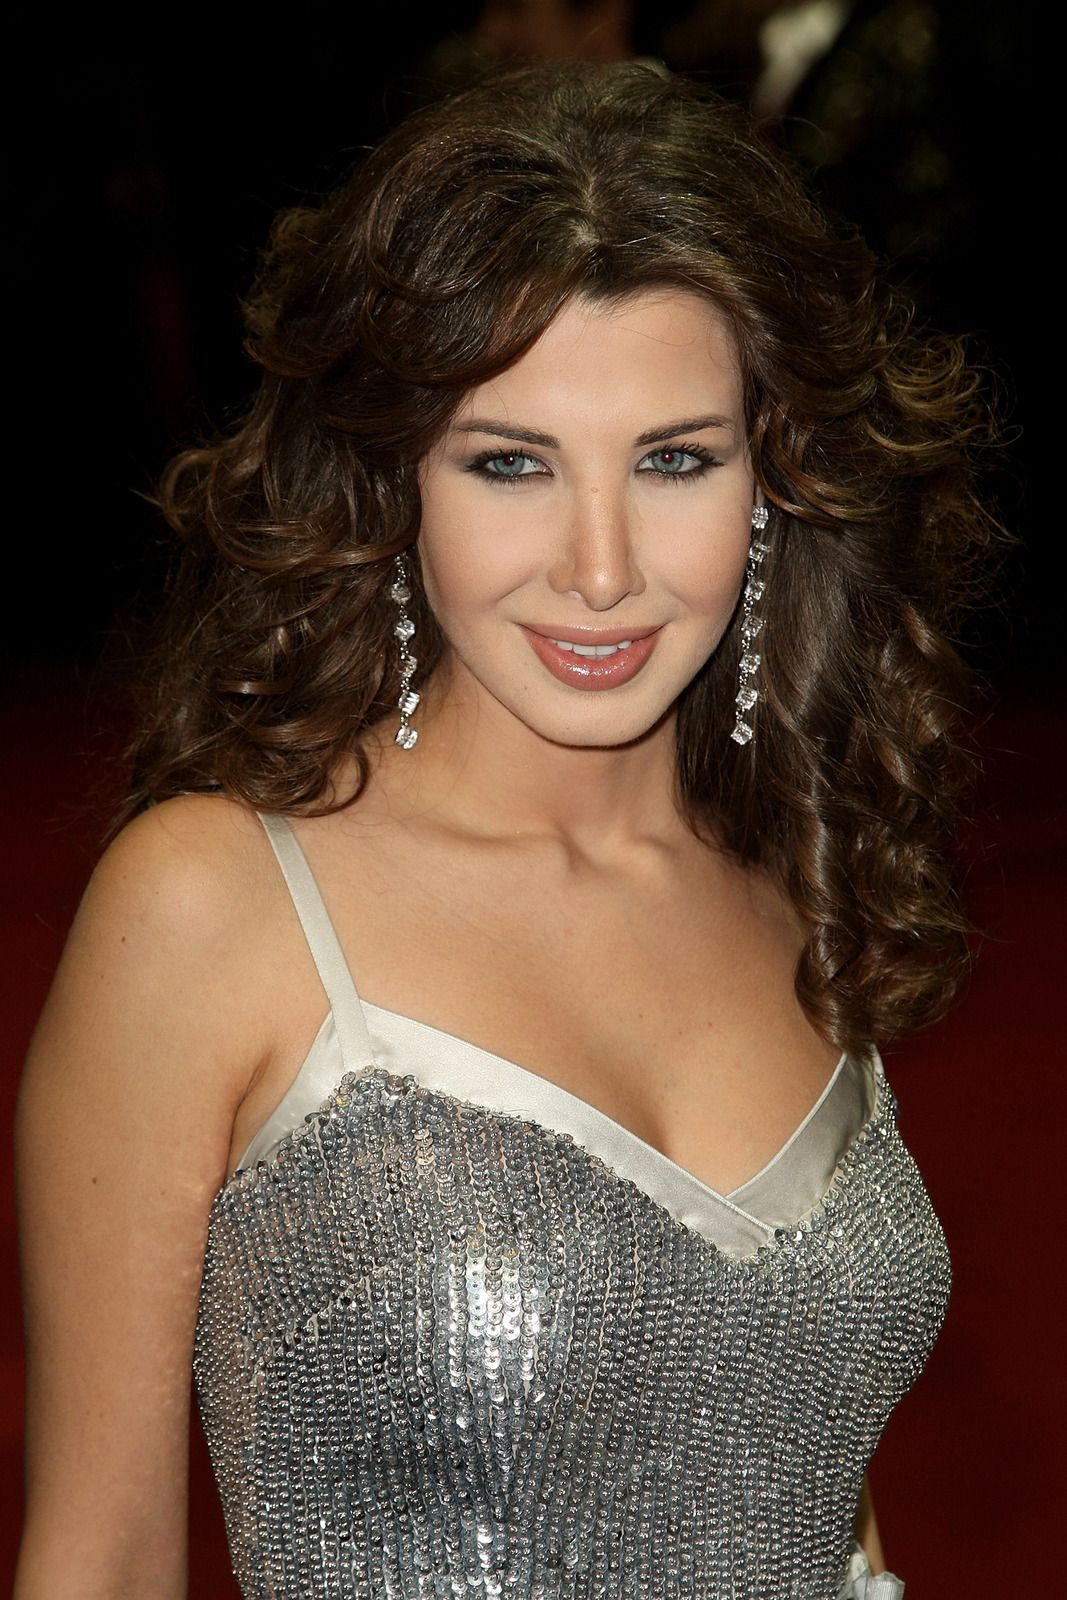 nancy-ajram-images-naked-pakistani-punjabi-girls-naked